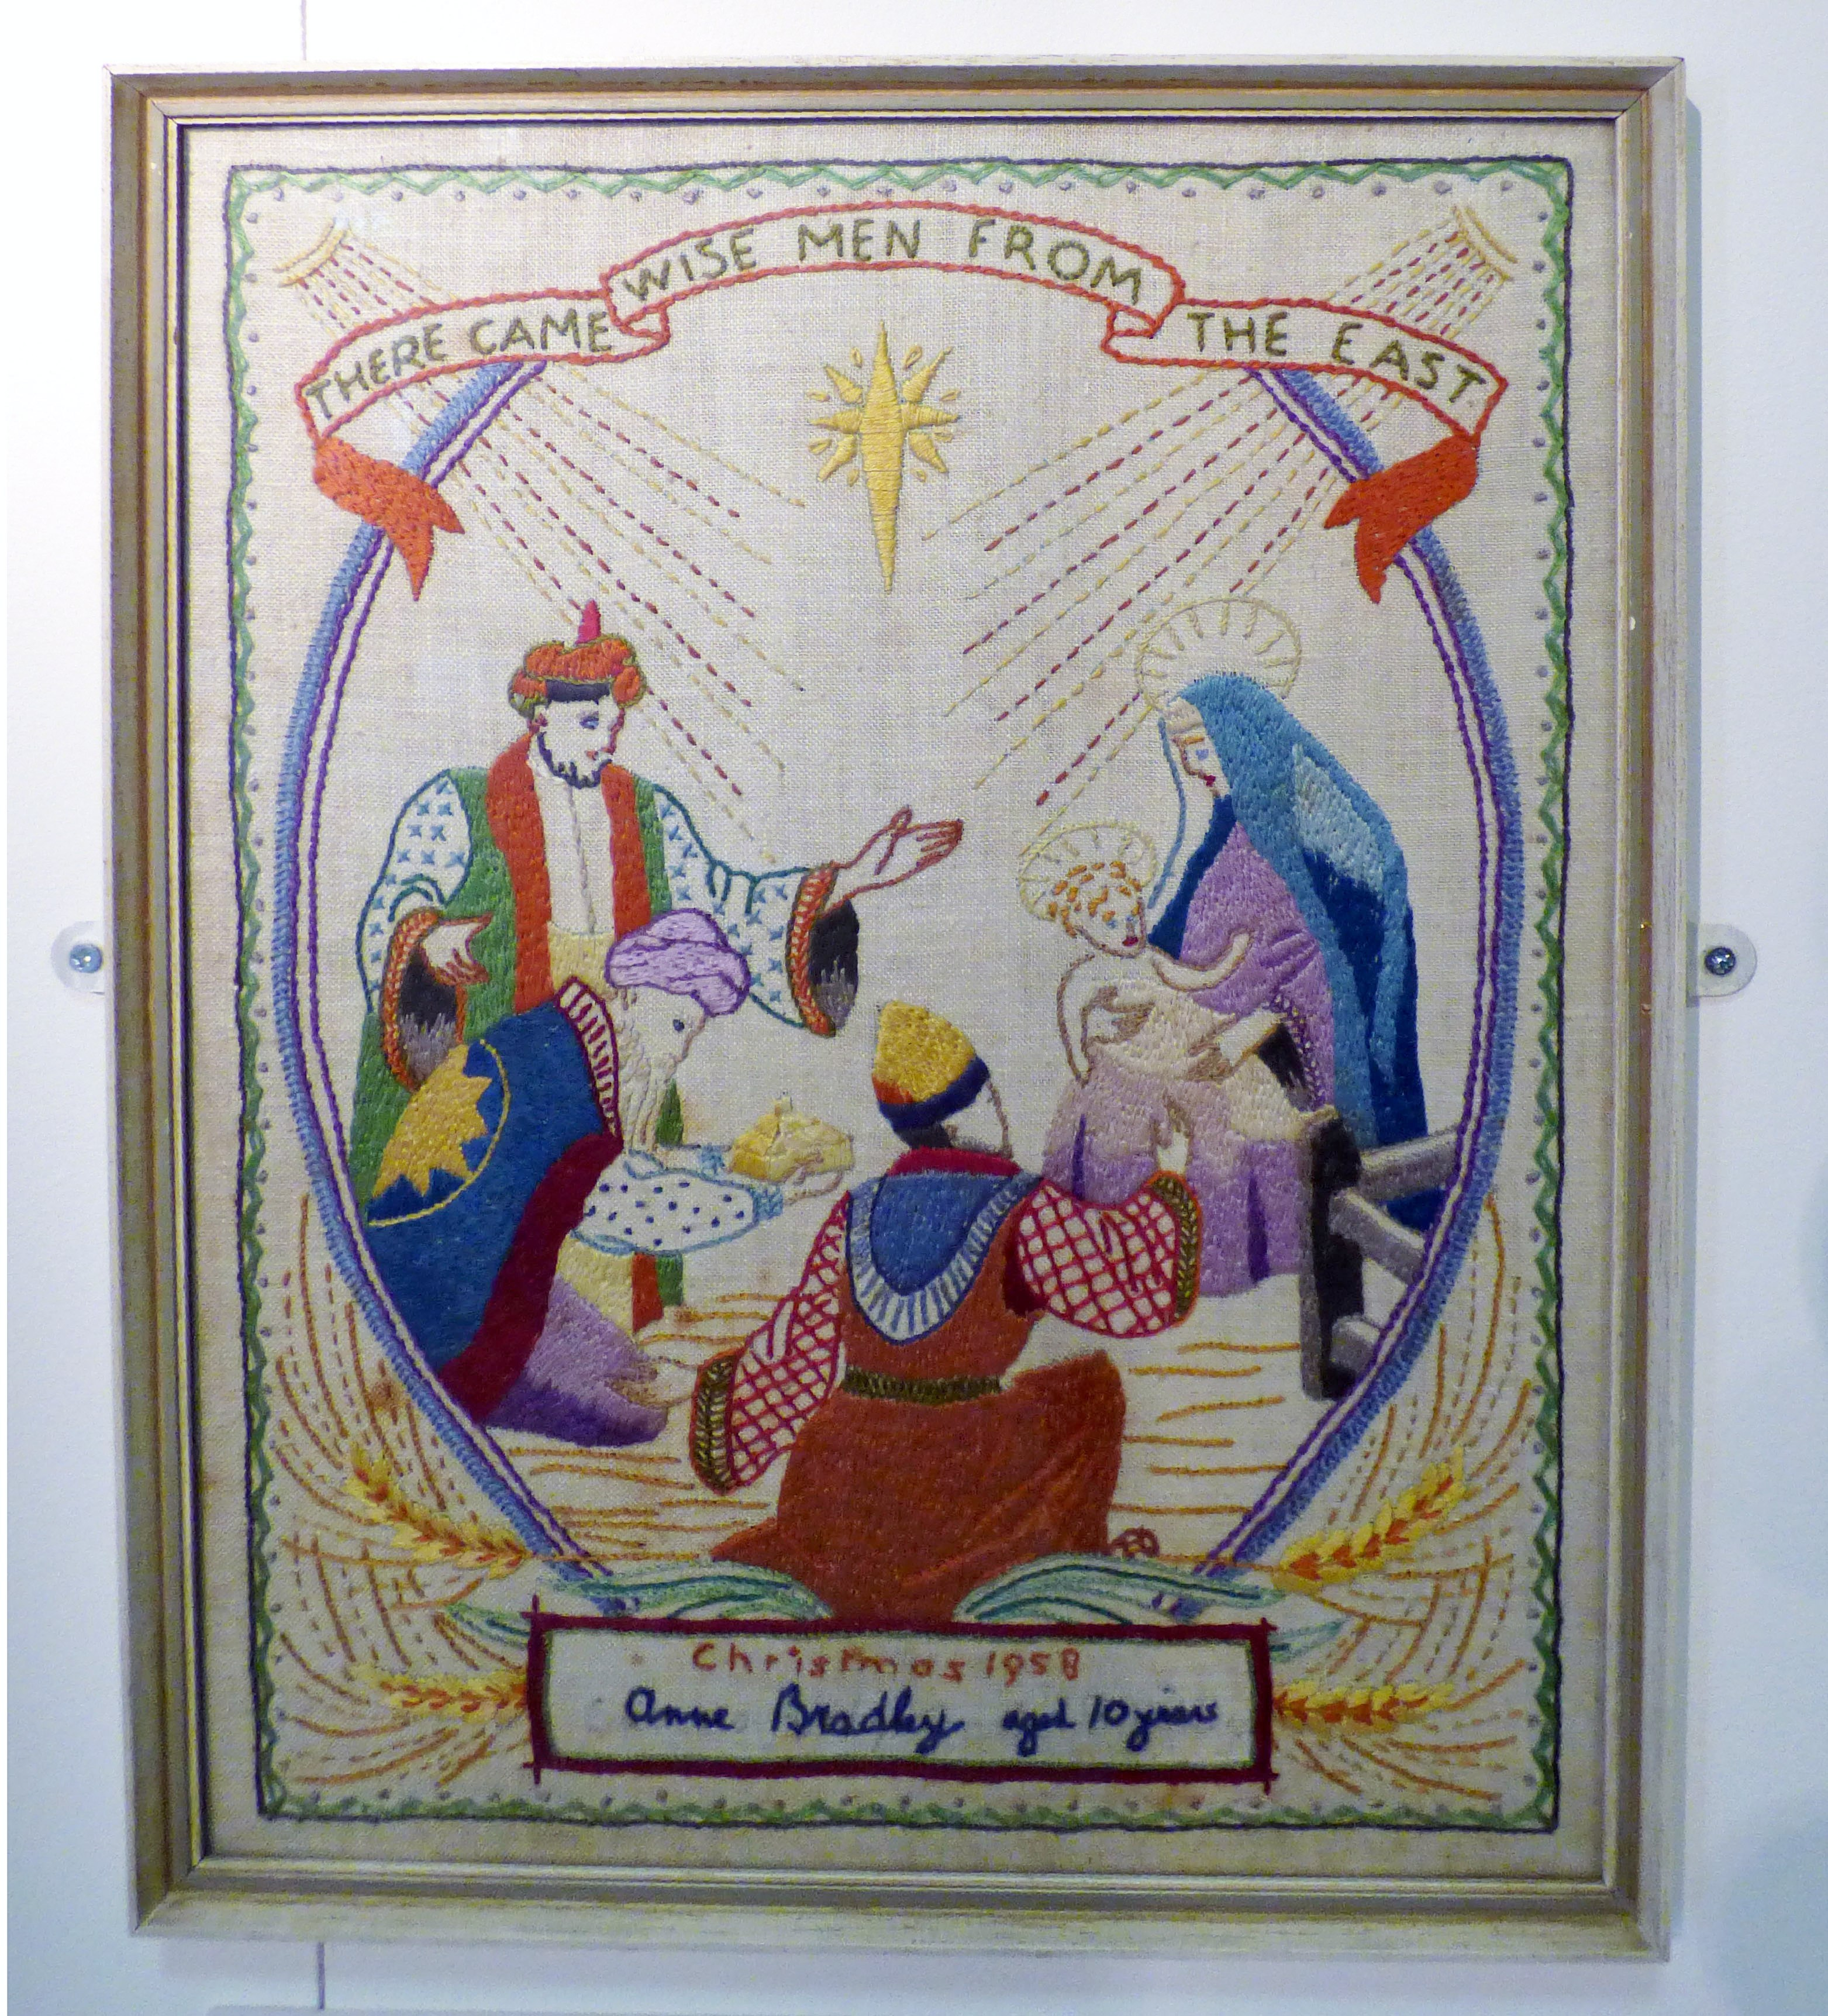 NATIVITY by Anne Butler, 1959, winning entry to a competition in a girl's comic